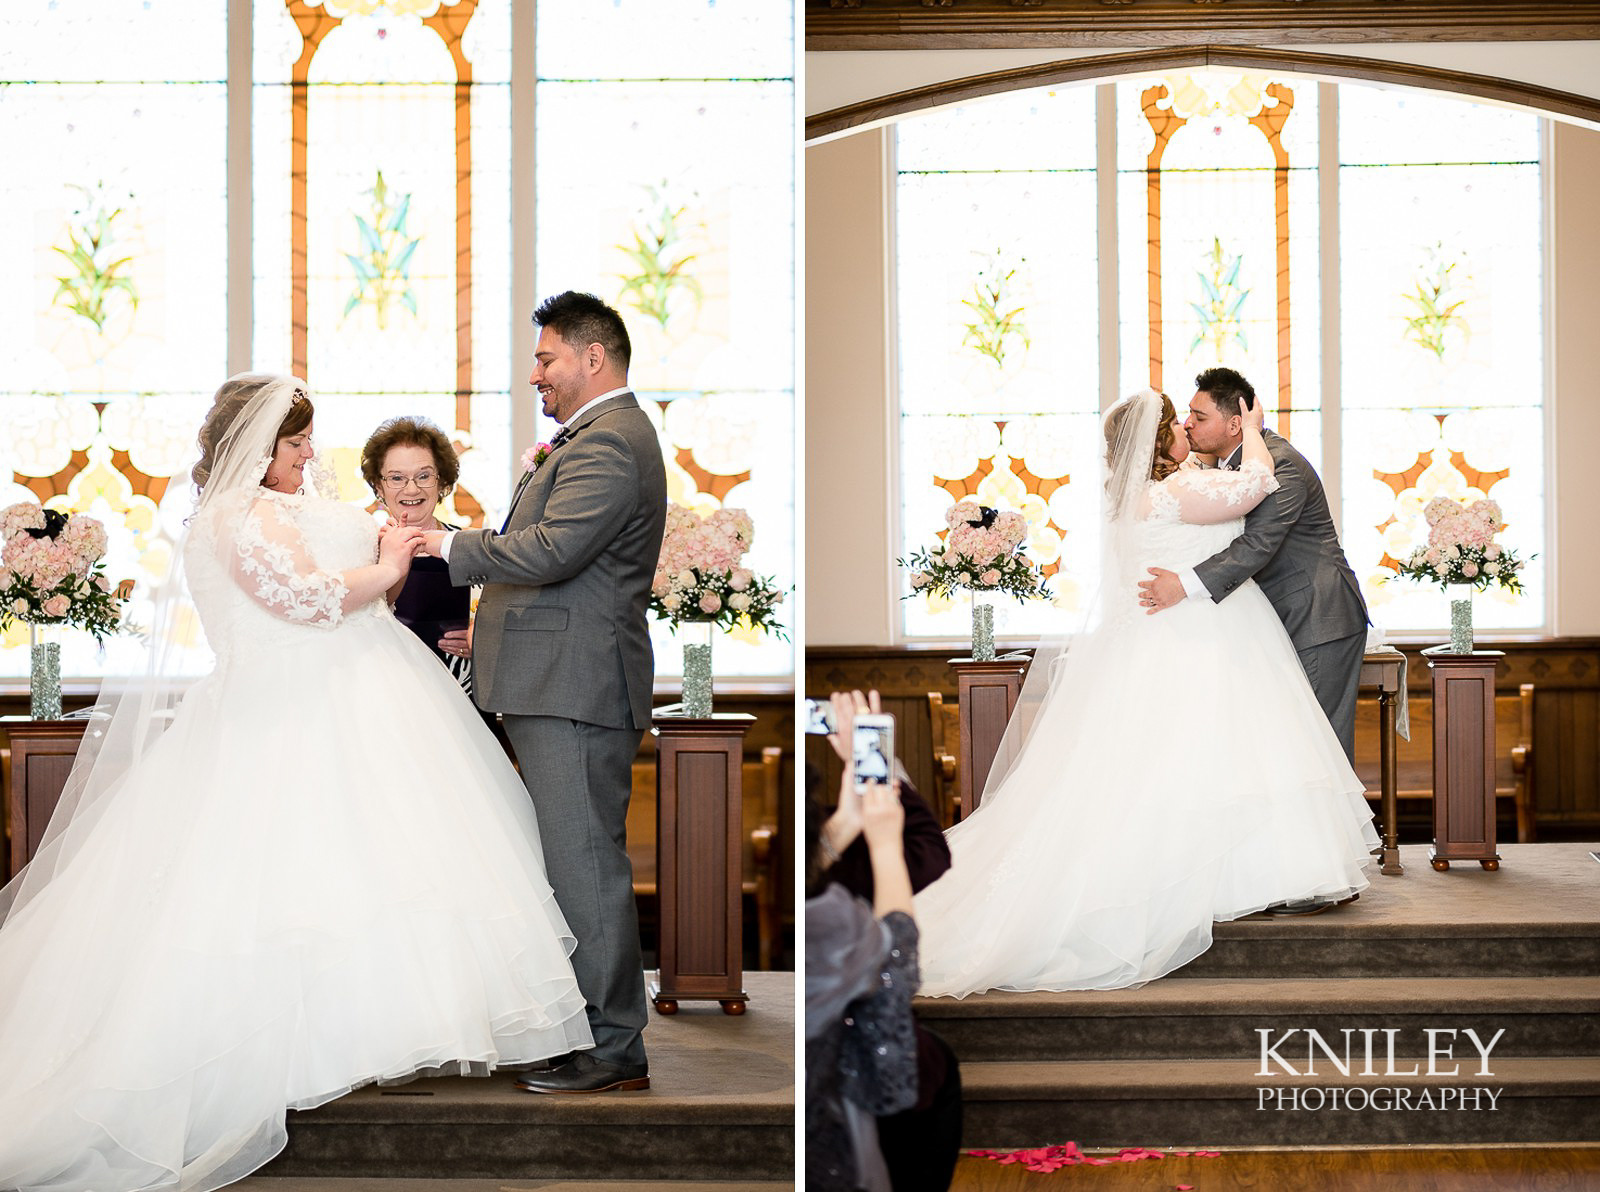 043 - Westminster Chapel - Rochester NY wedding photo - Kniley Photography.jpg